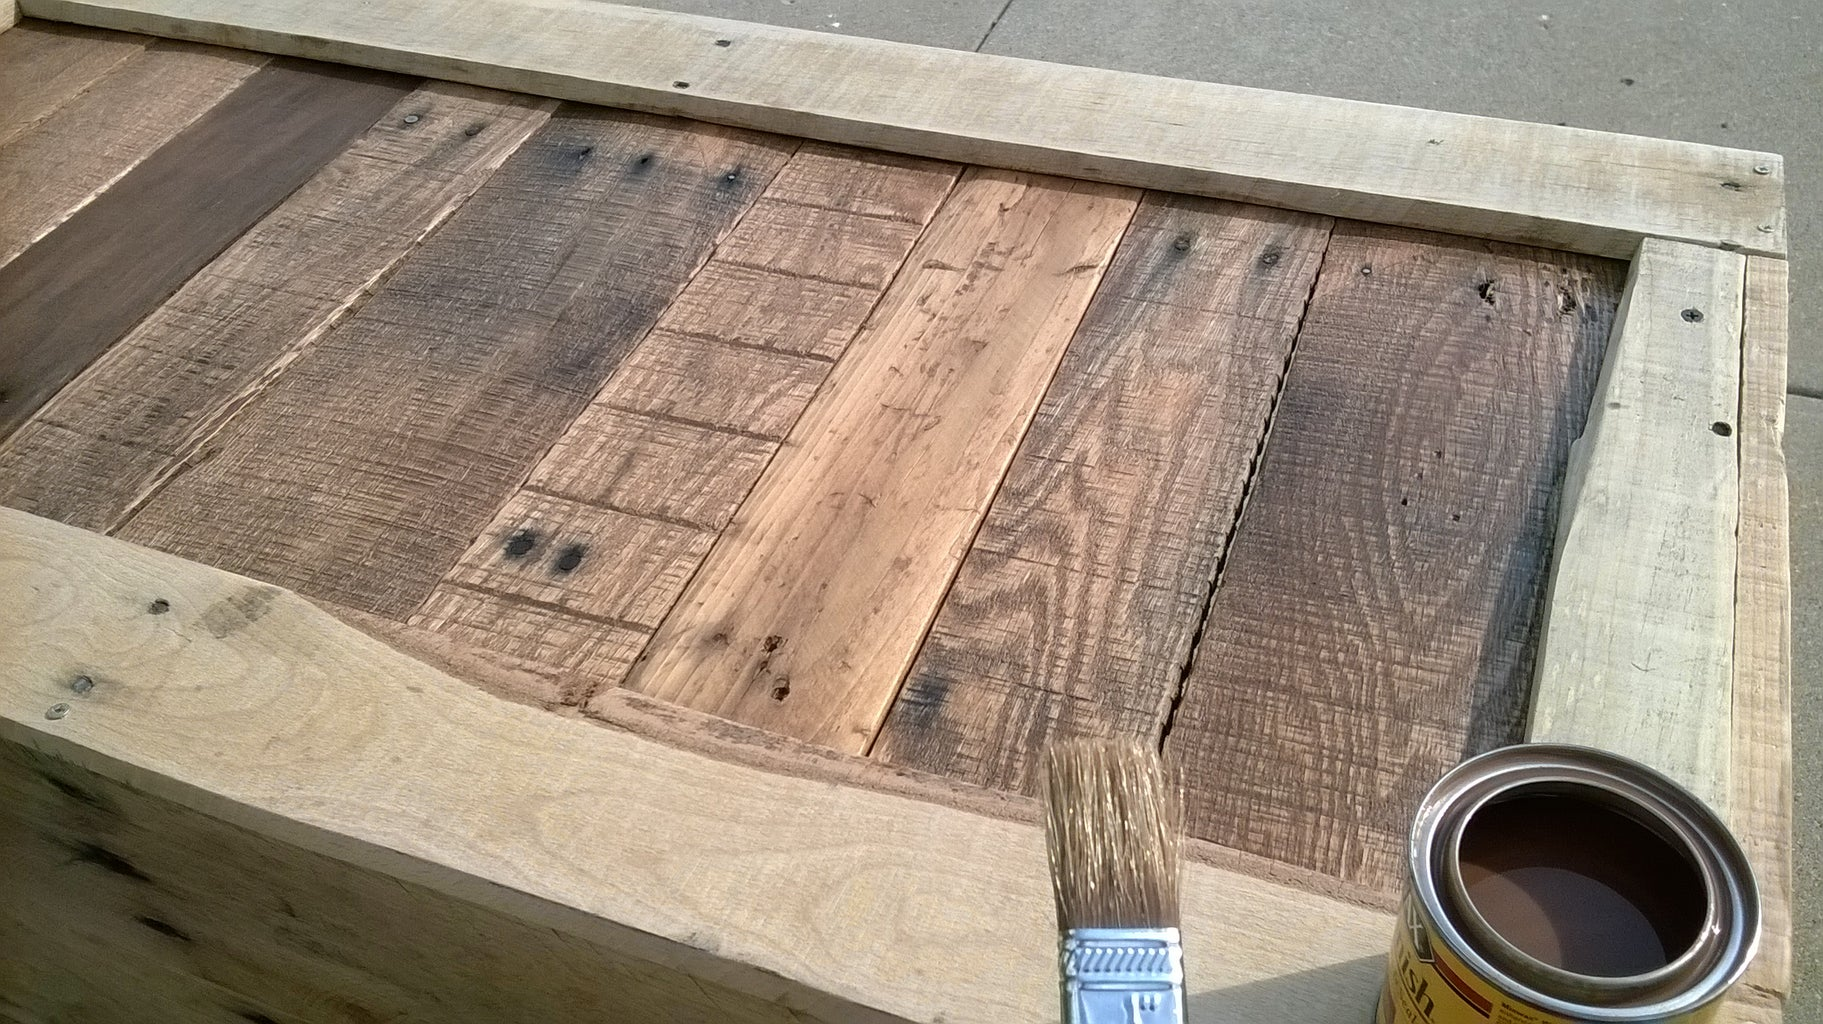 Staining the Trunk